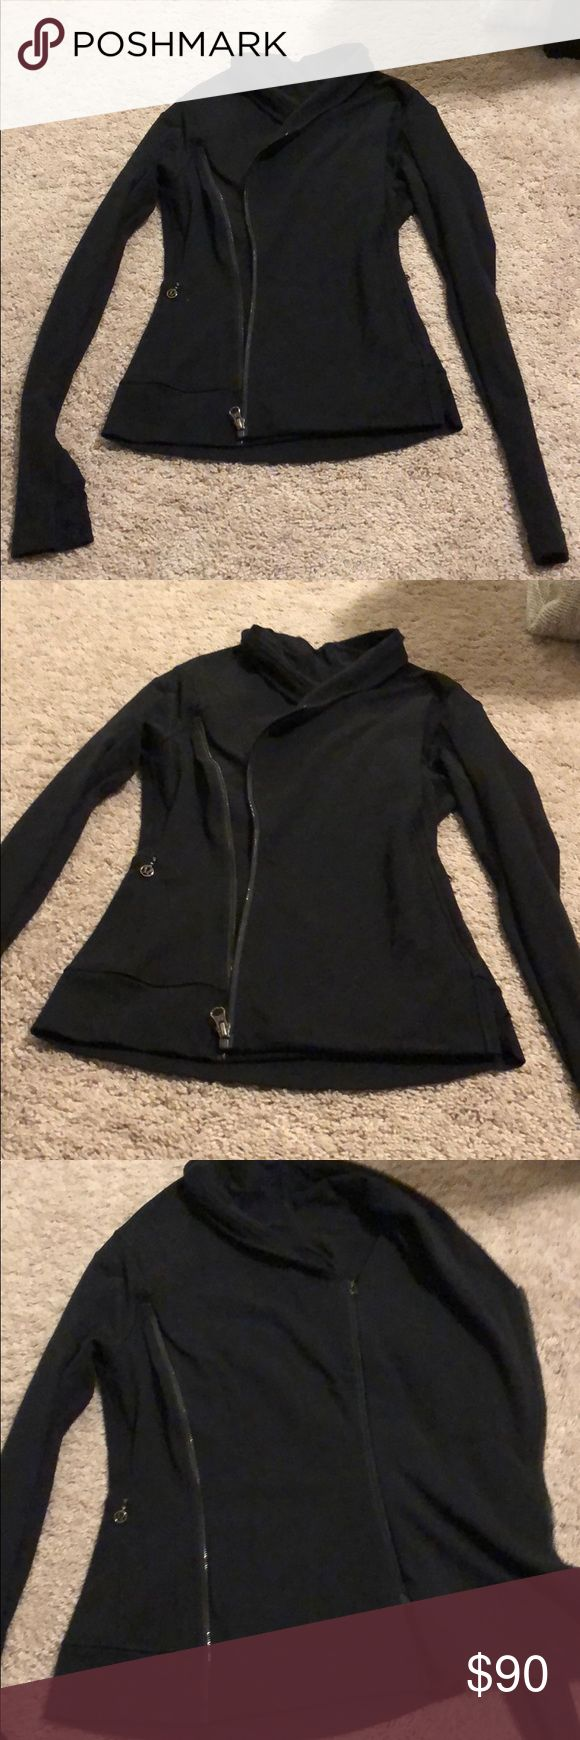 Lululemon Wrap Zip Up Swetashirt Lululemon Wrap Zip Up Jacket in Black. This is in very good condition. I got this a few years ago and haven't worn it all that much. Super cute on. It's a size 6! Make me an offer! lululemon athletica Jackets & Coats